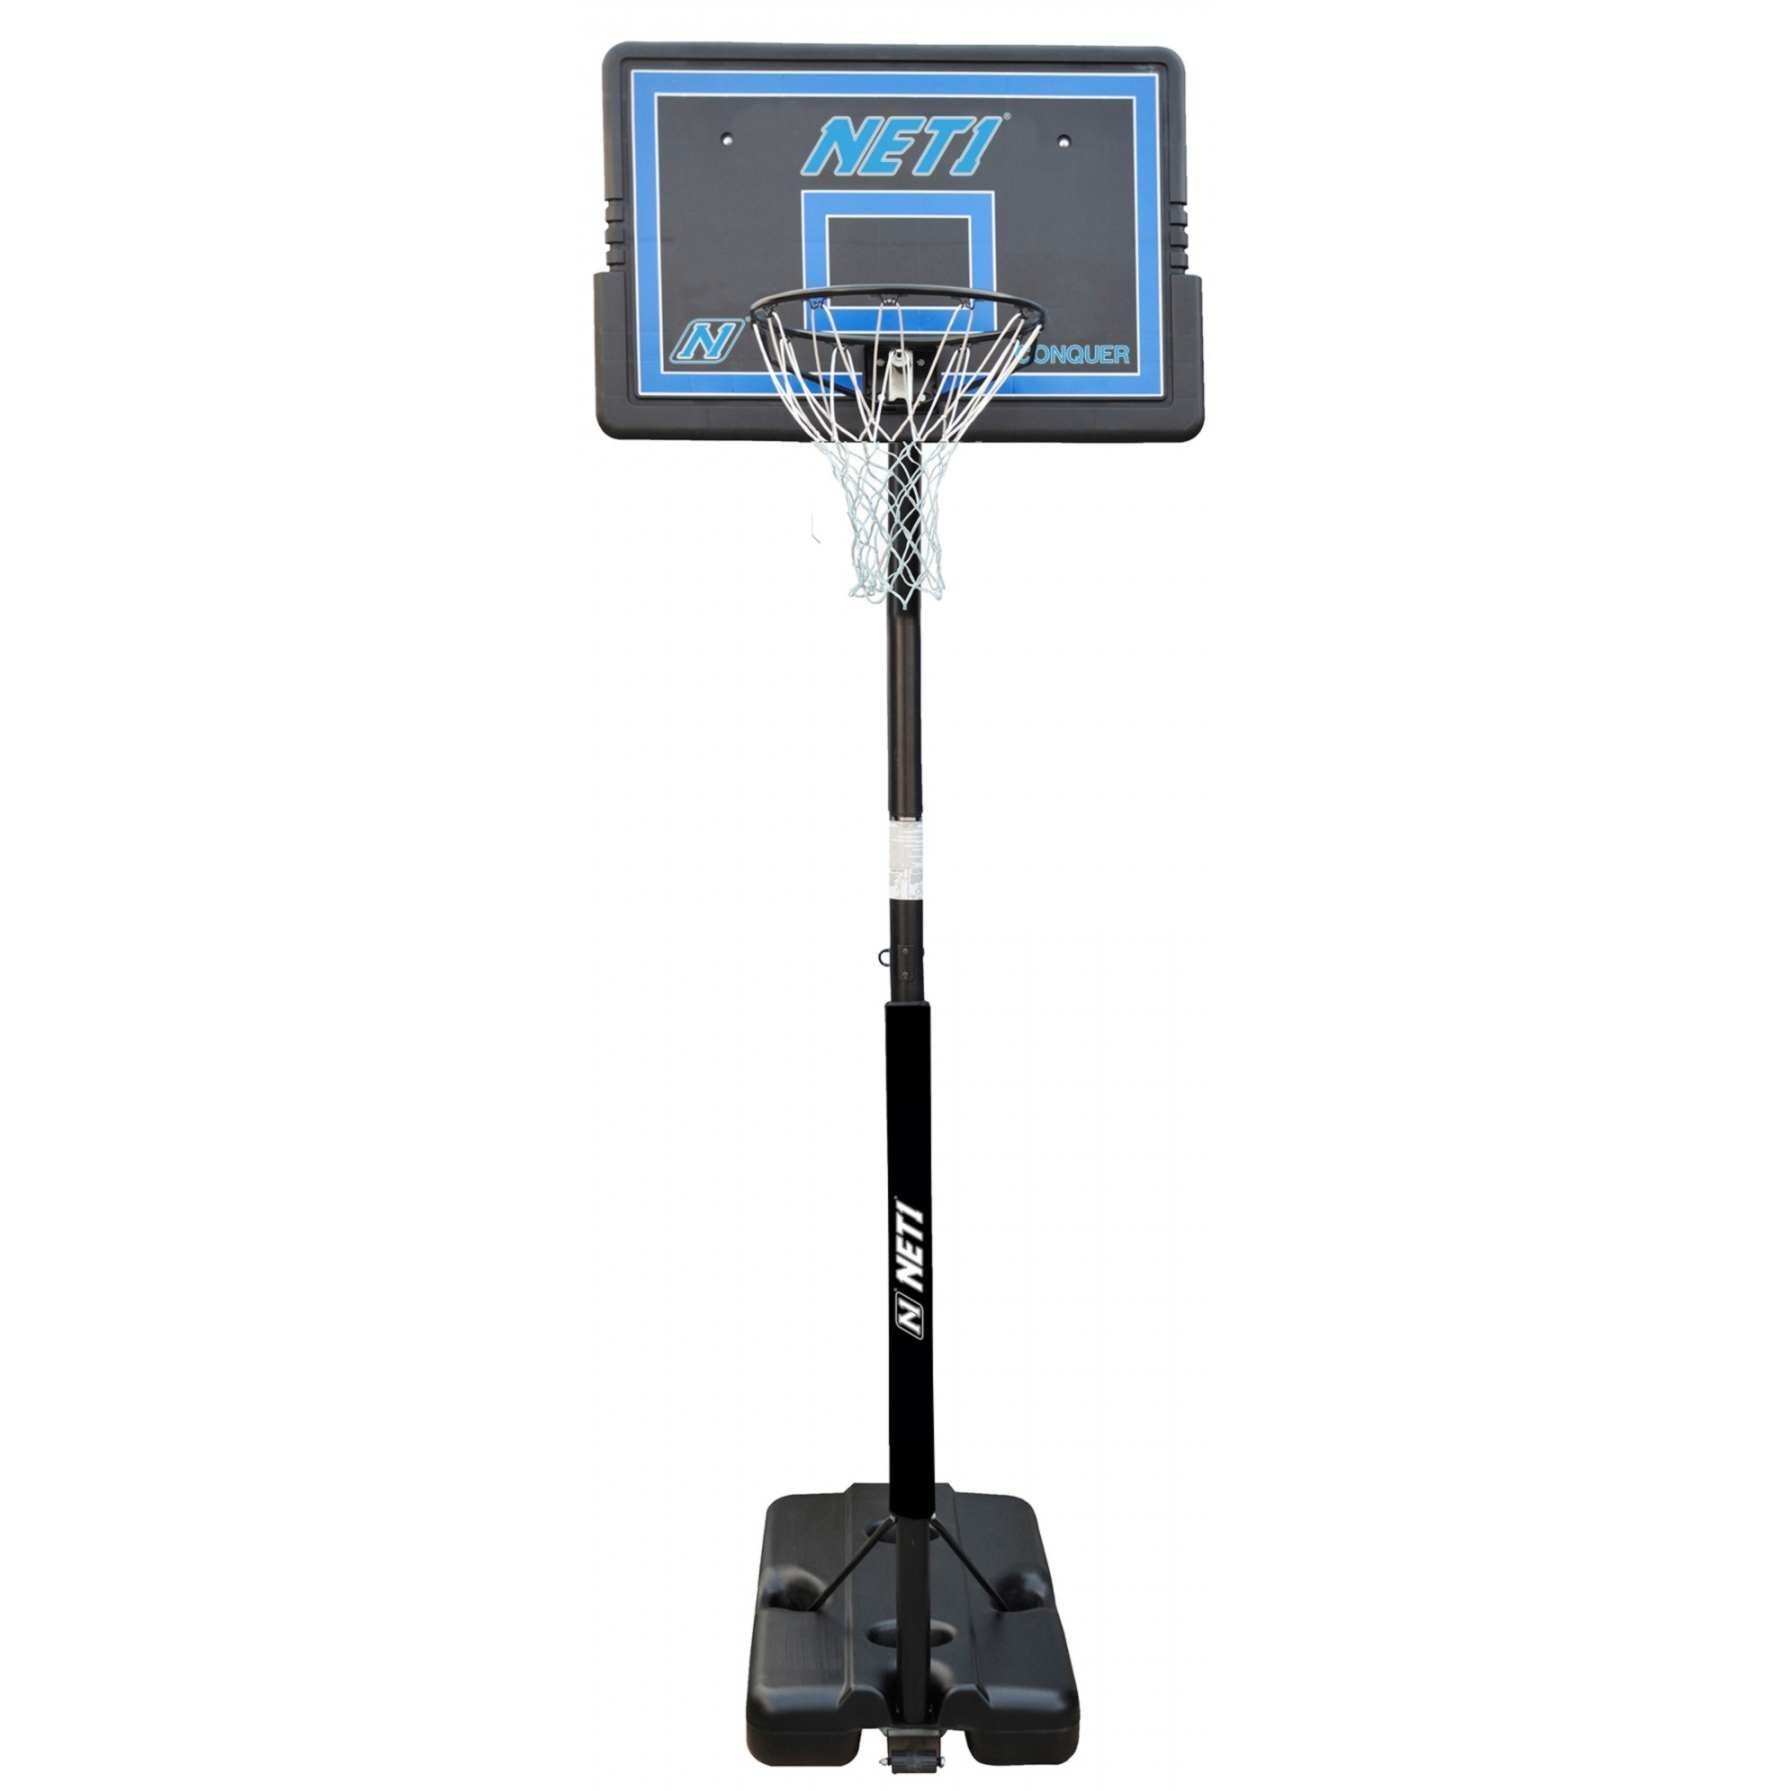 NET1 Conquer Portable Basketball System N1-N123203